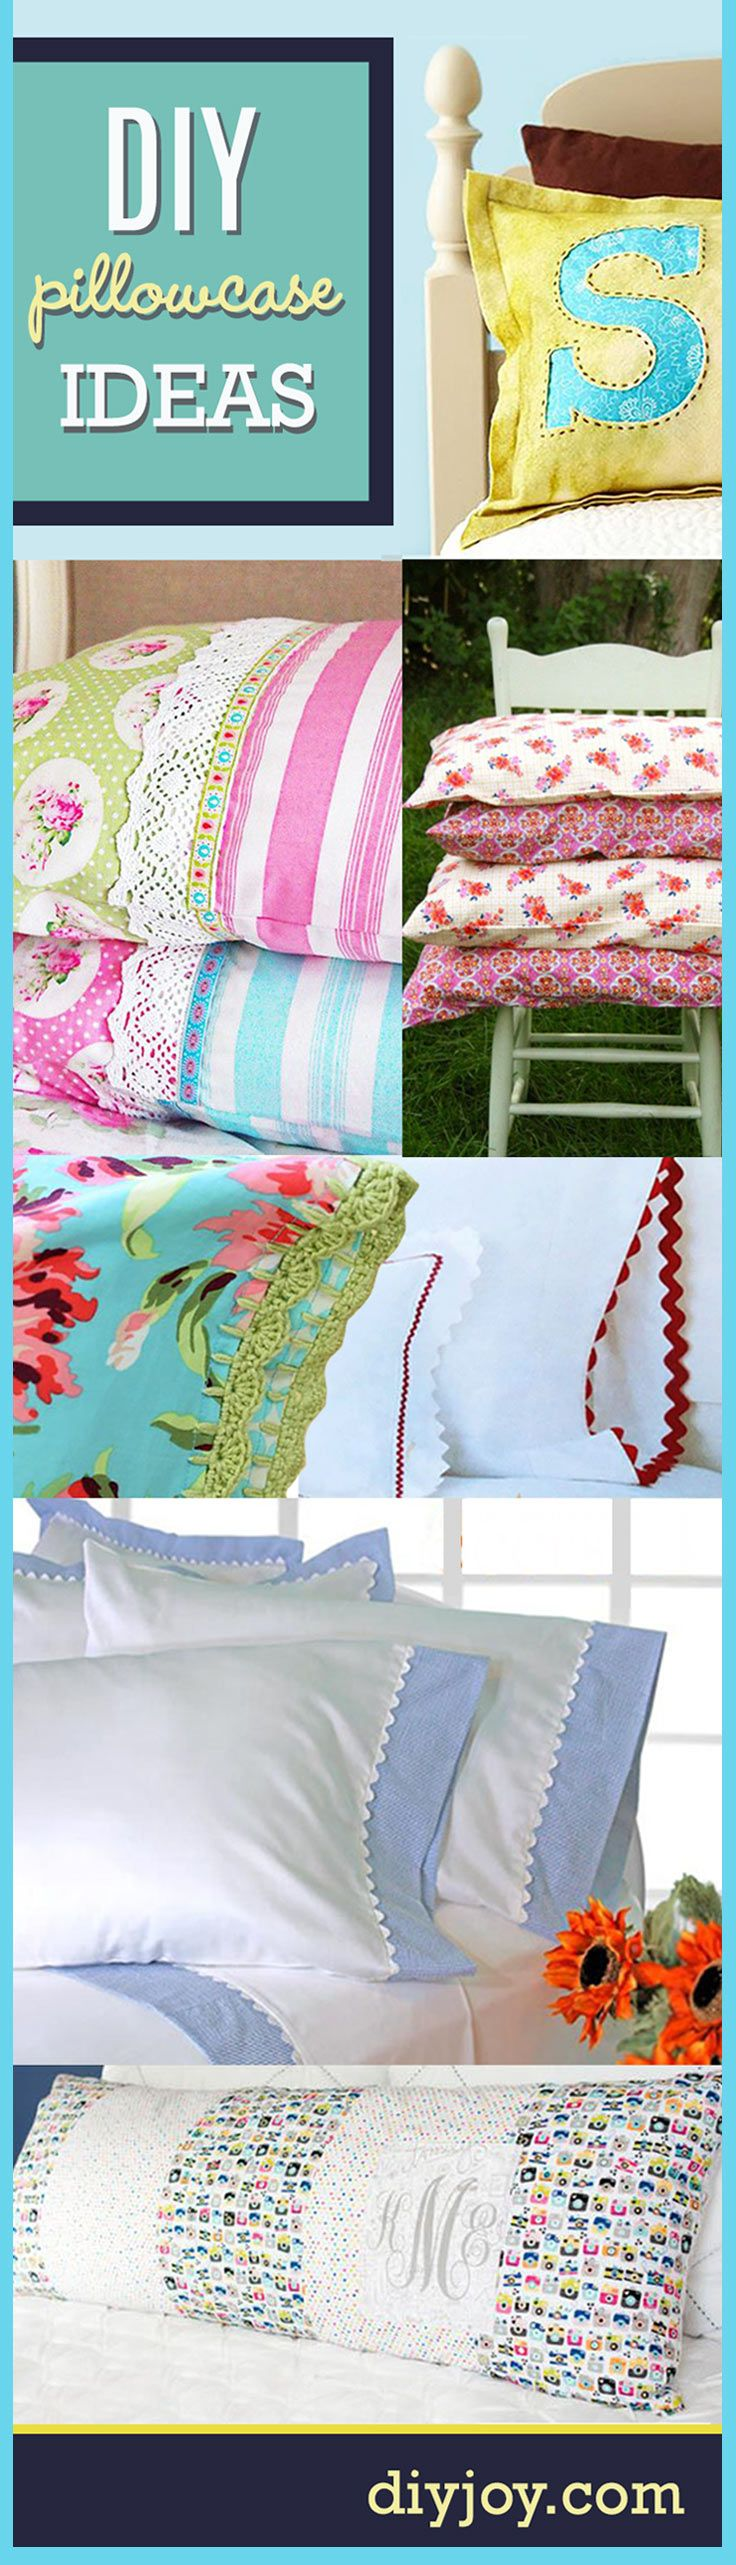 Sewing Projects for The Home- DIY Pillowcase Ideas | Pinterest | Diy ...